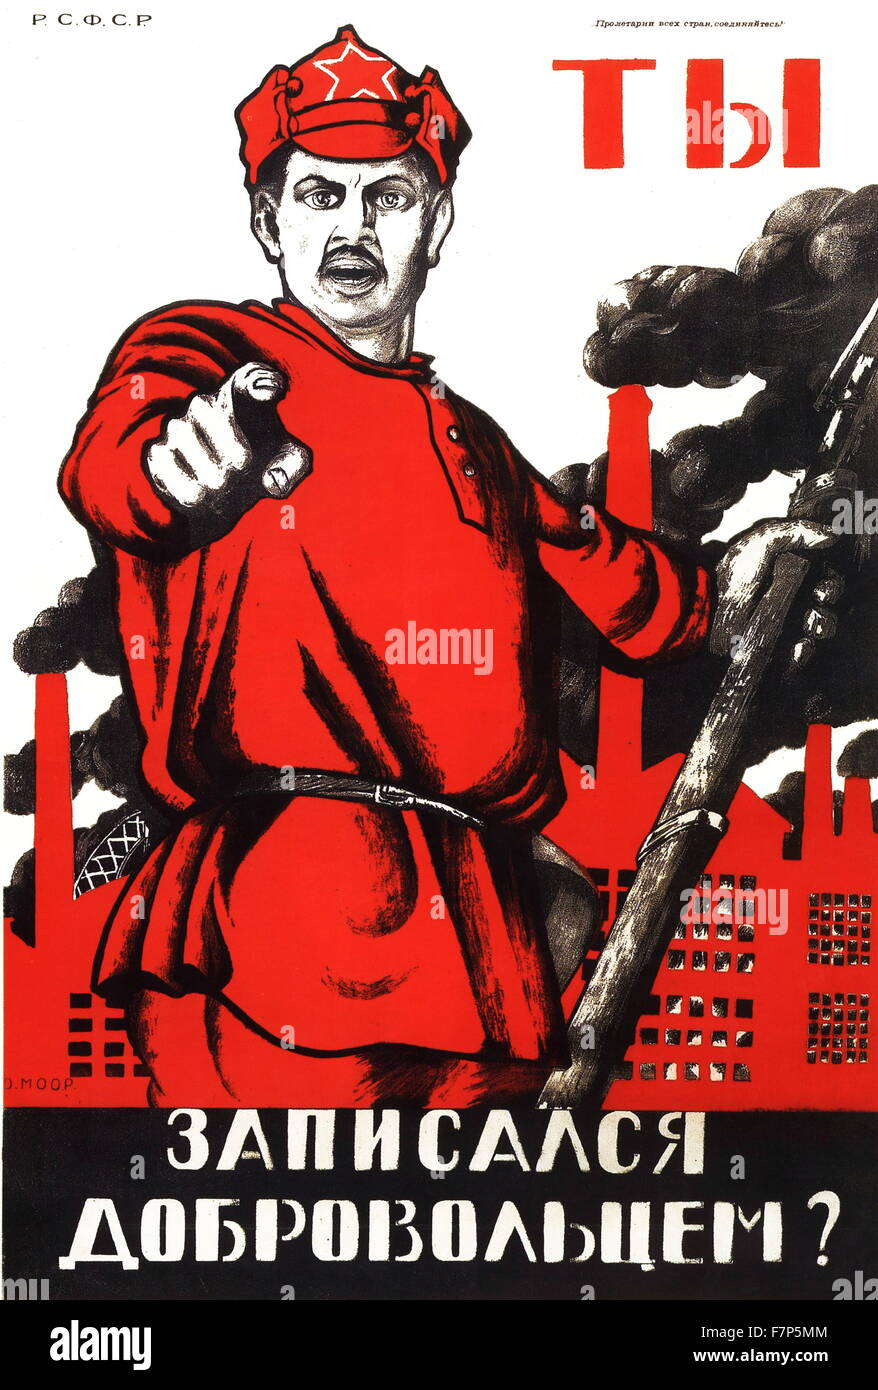 Russain propaganda poster by Dmitry Moor (1883-1946) (D. Moor the professional name of Dmitry Stakhievich Orlov) - Stock Image